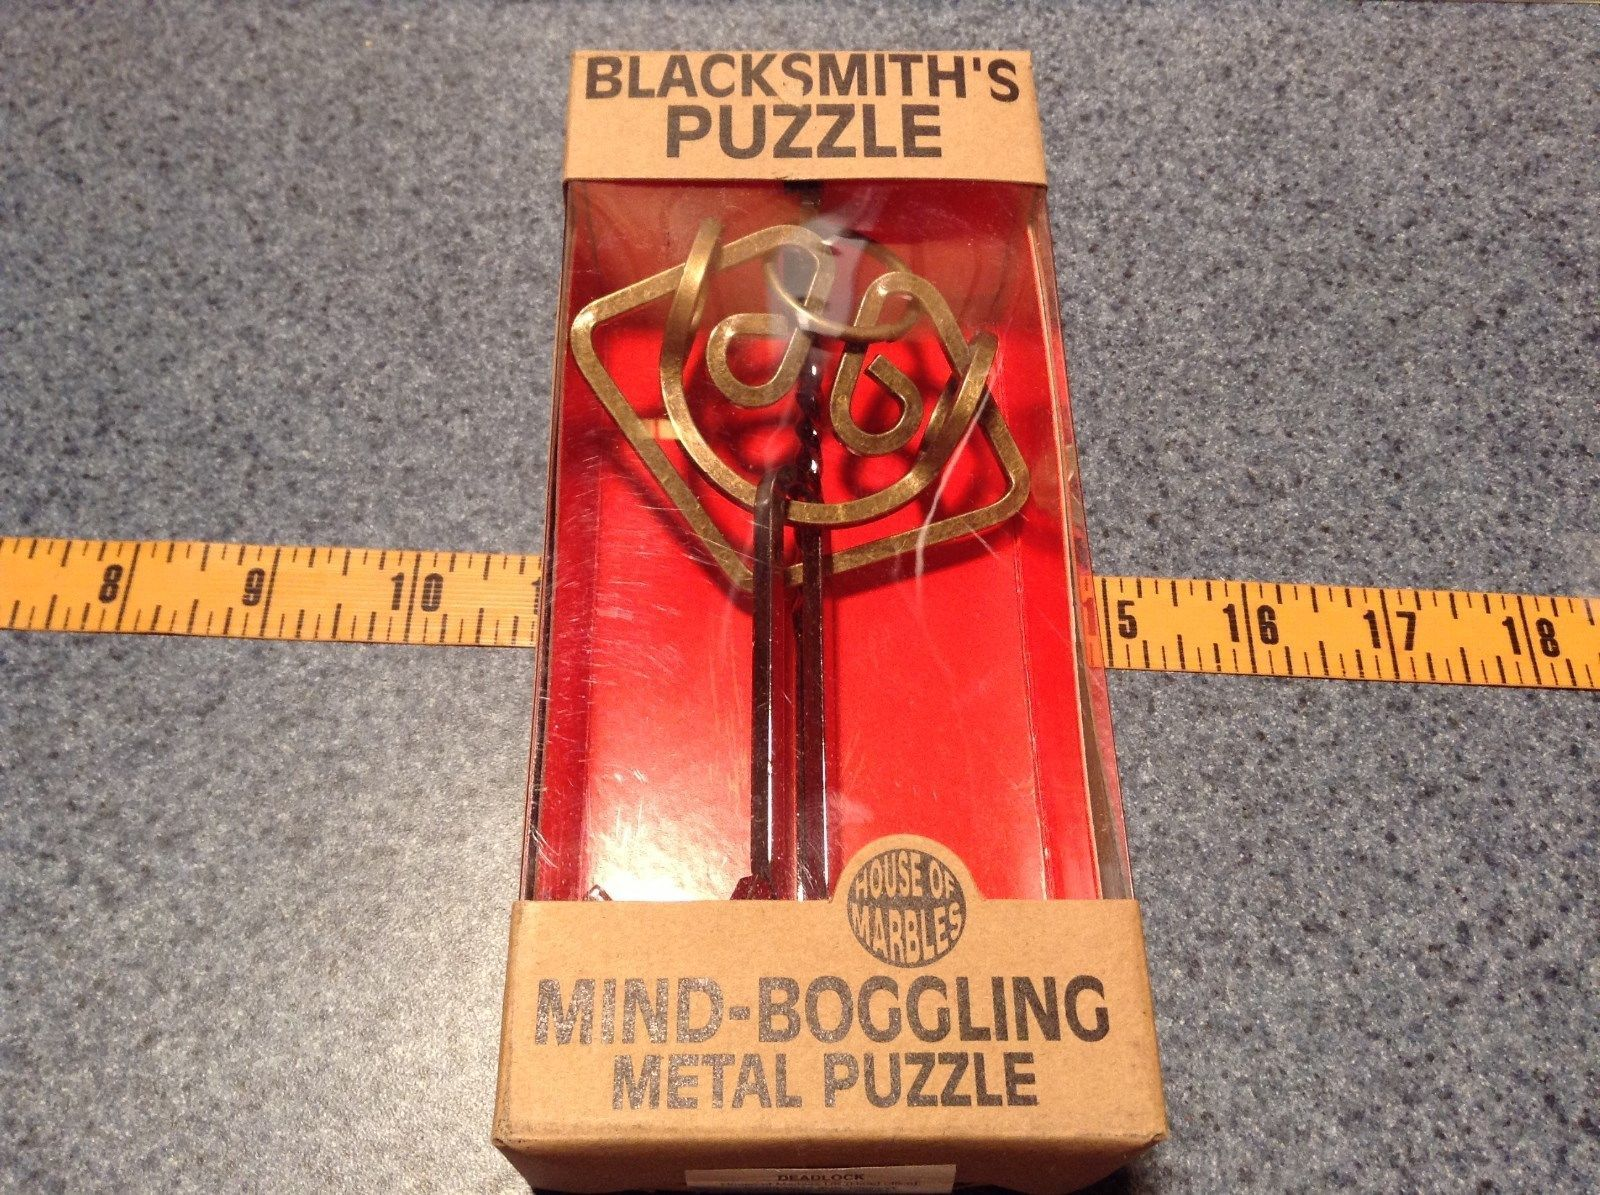 Deadlock Mind Boggling Metal Puzzle by House of Marbles Blacksmiths Puzzle